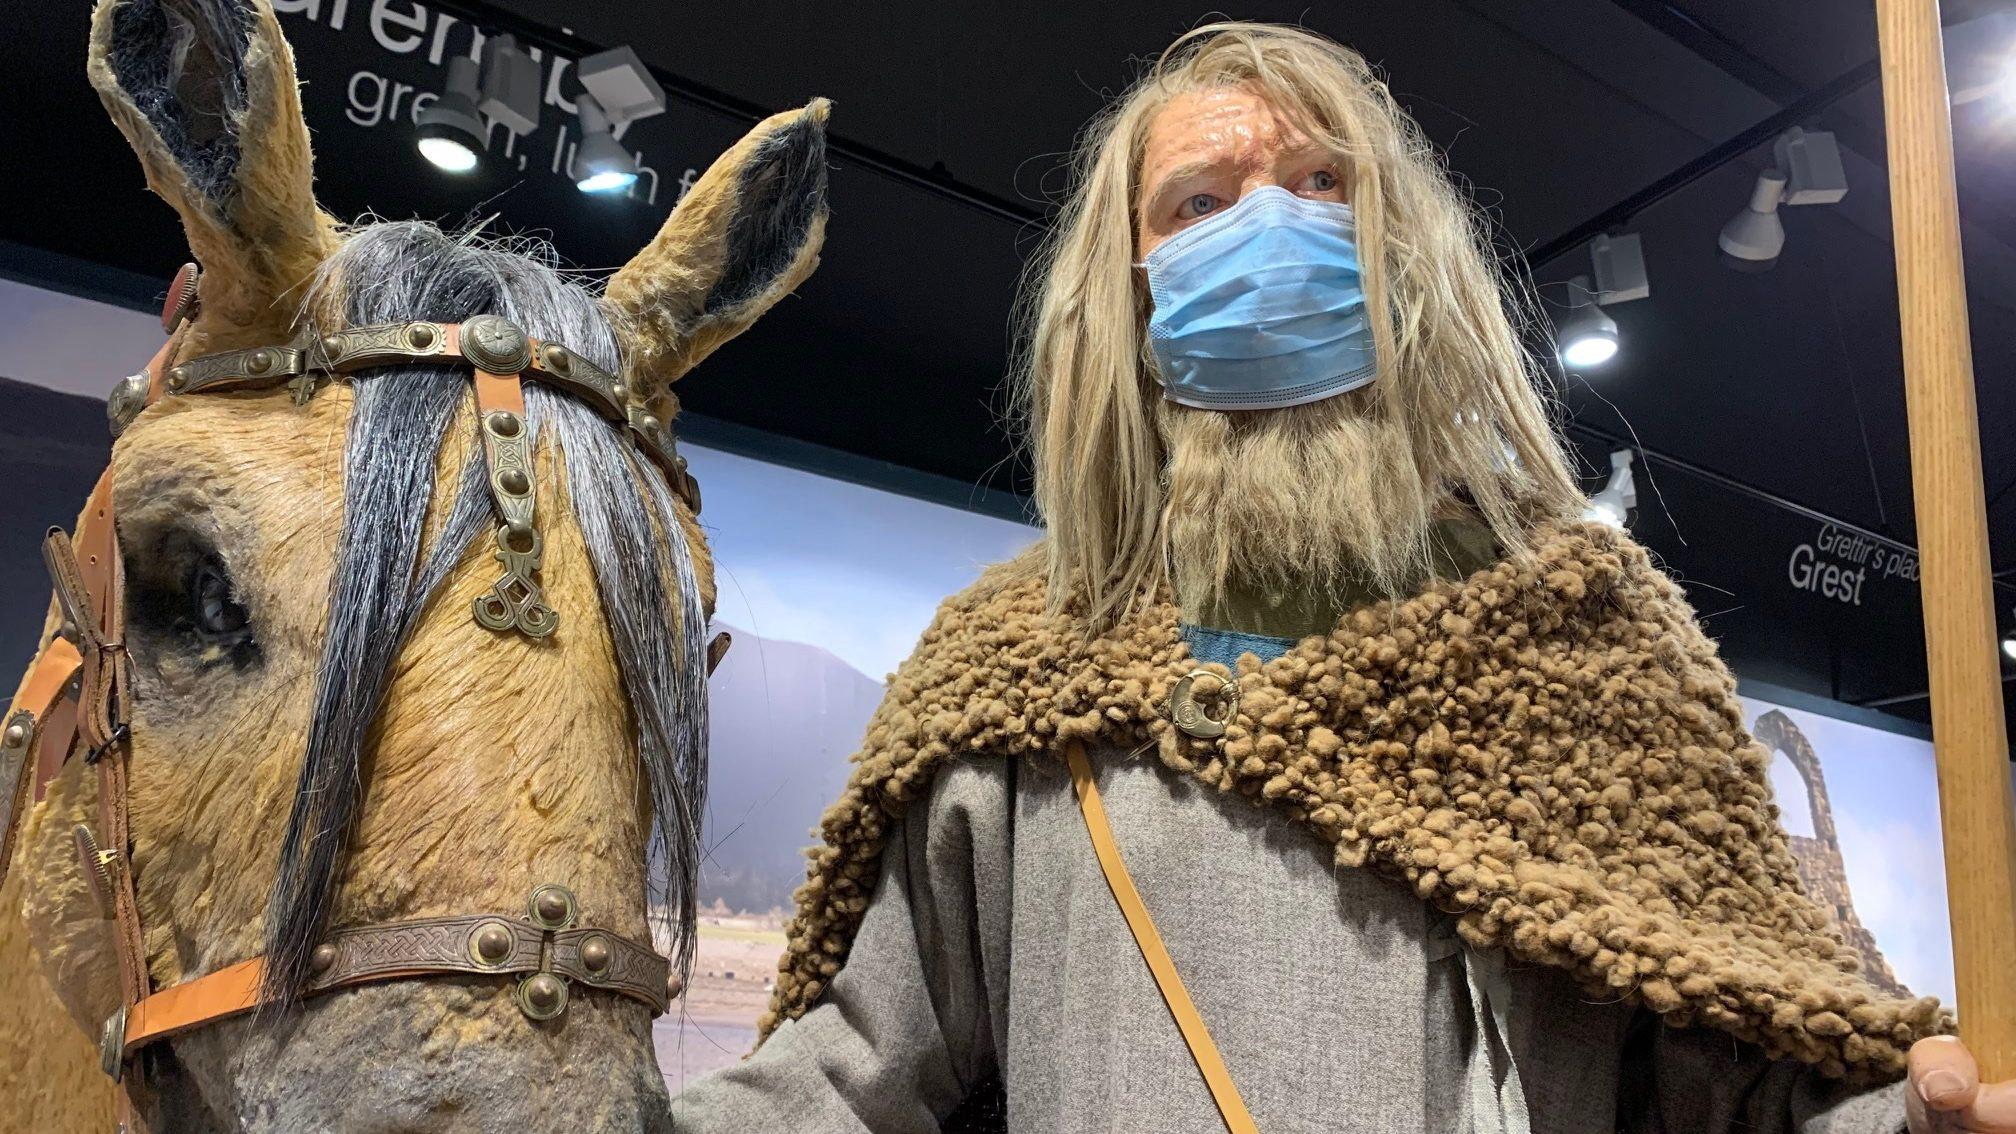 A Manx Museum Viking demonstrates how to wear a PPE mask